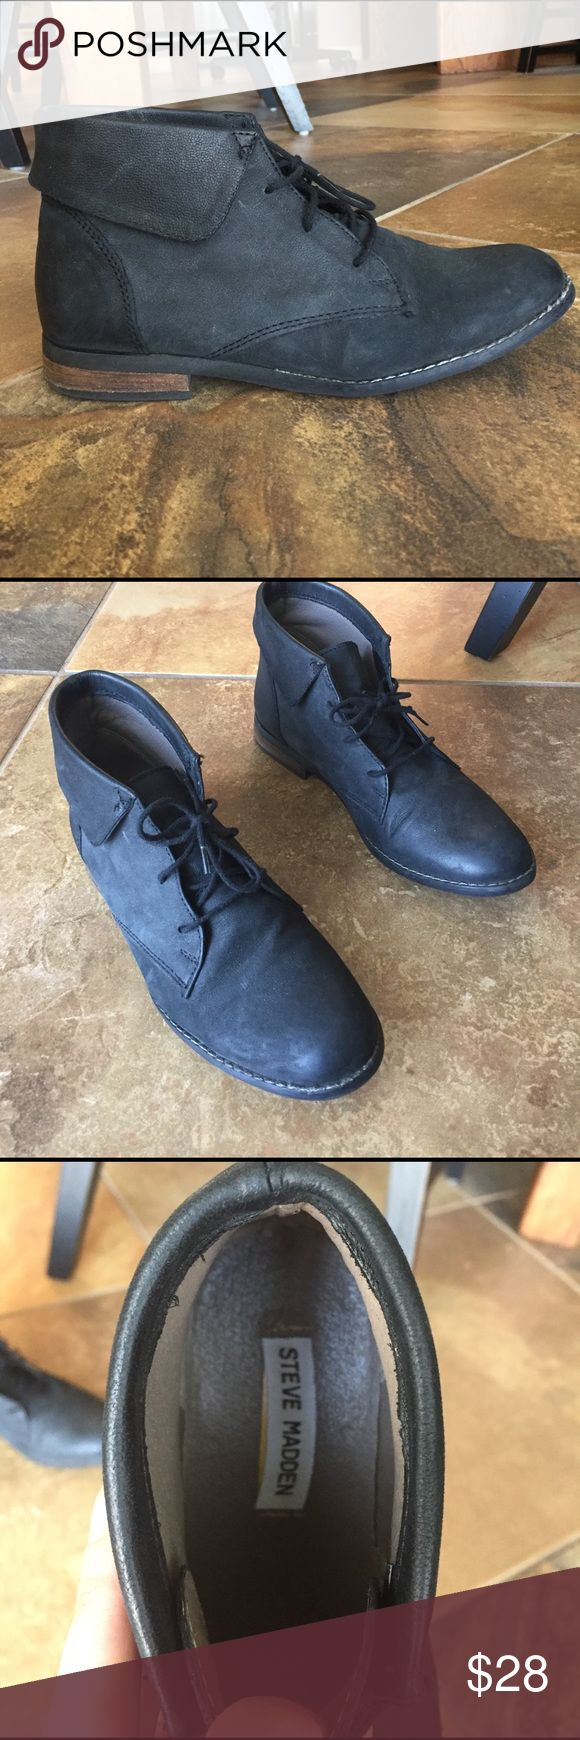 Steve Madden Black Lace Up Booties Worn two times. Look so cute with rolled up jeans or tucked in too. 😊 Steve Madden Shoes Ankle Boots & Booties